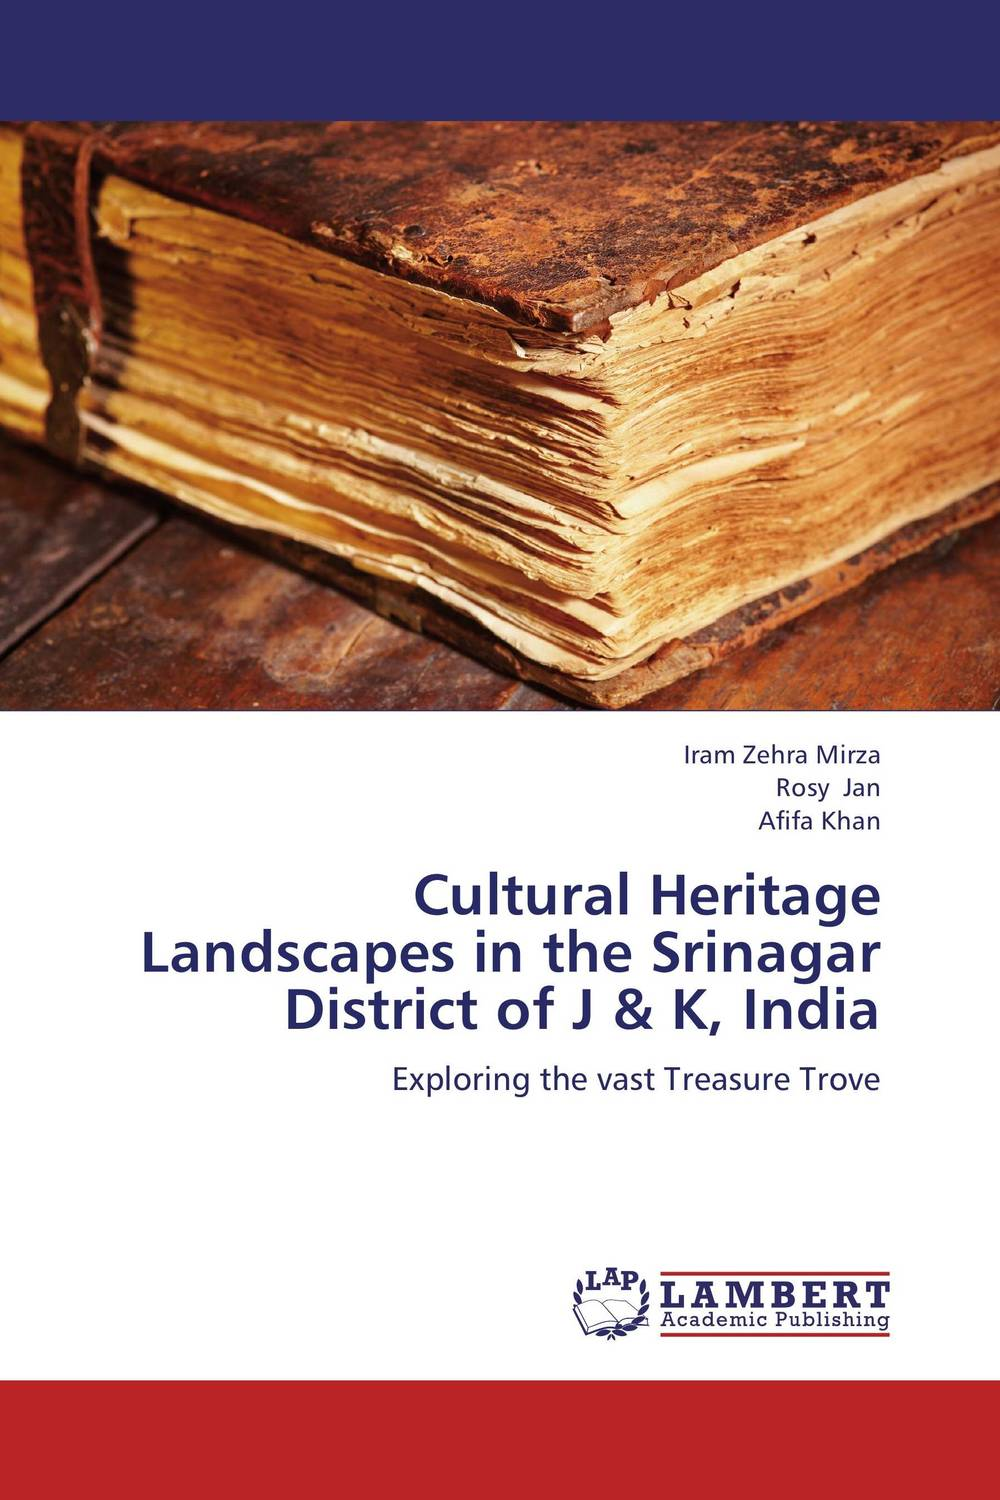 Cultural Heritage Landscapes in the Srinagar District of J & K, India кпб rs 97